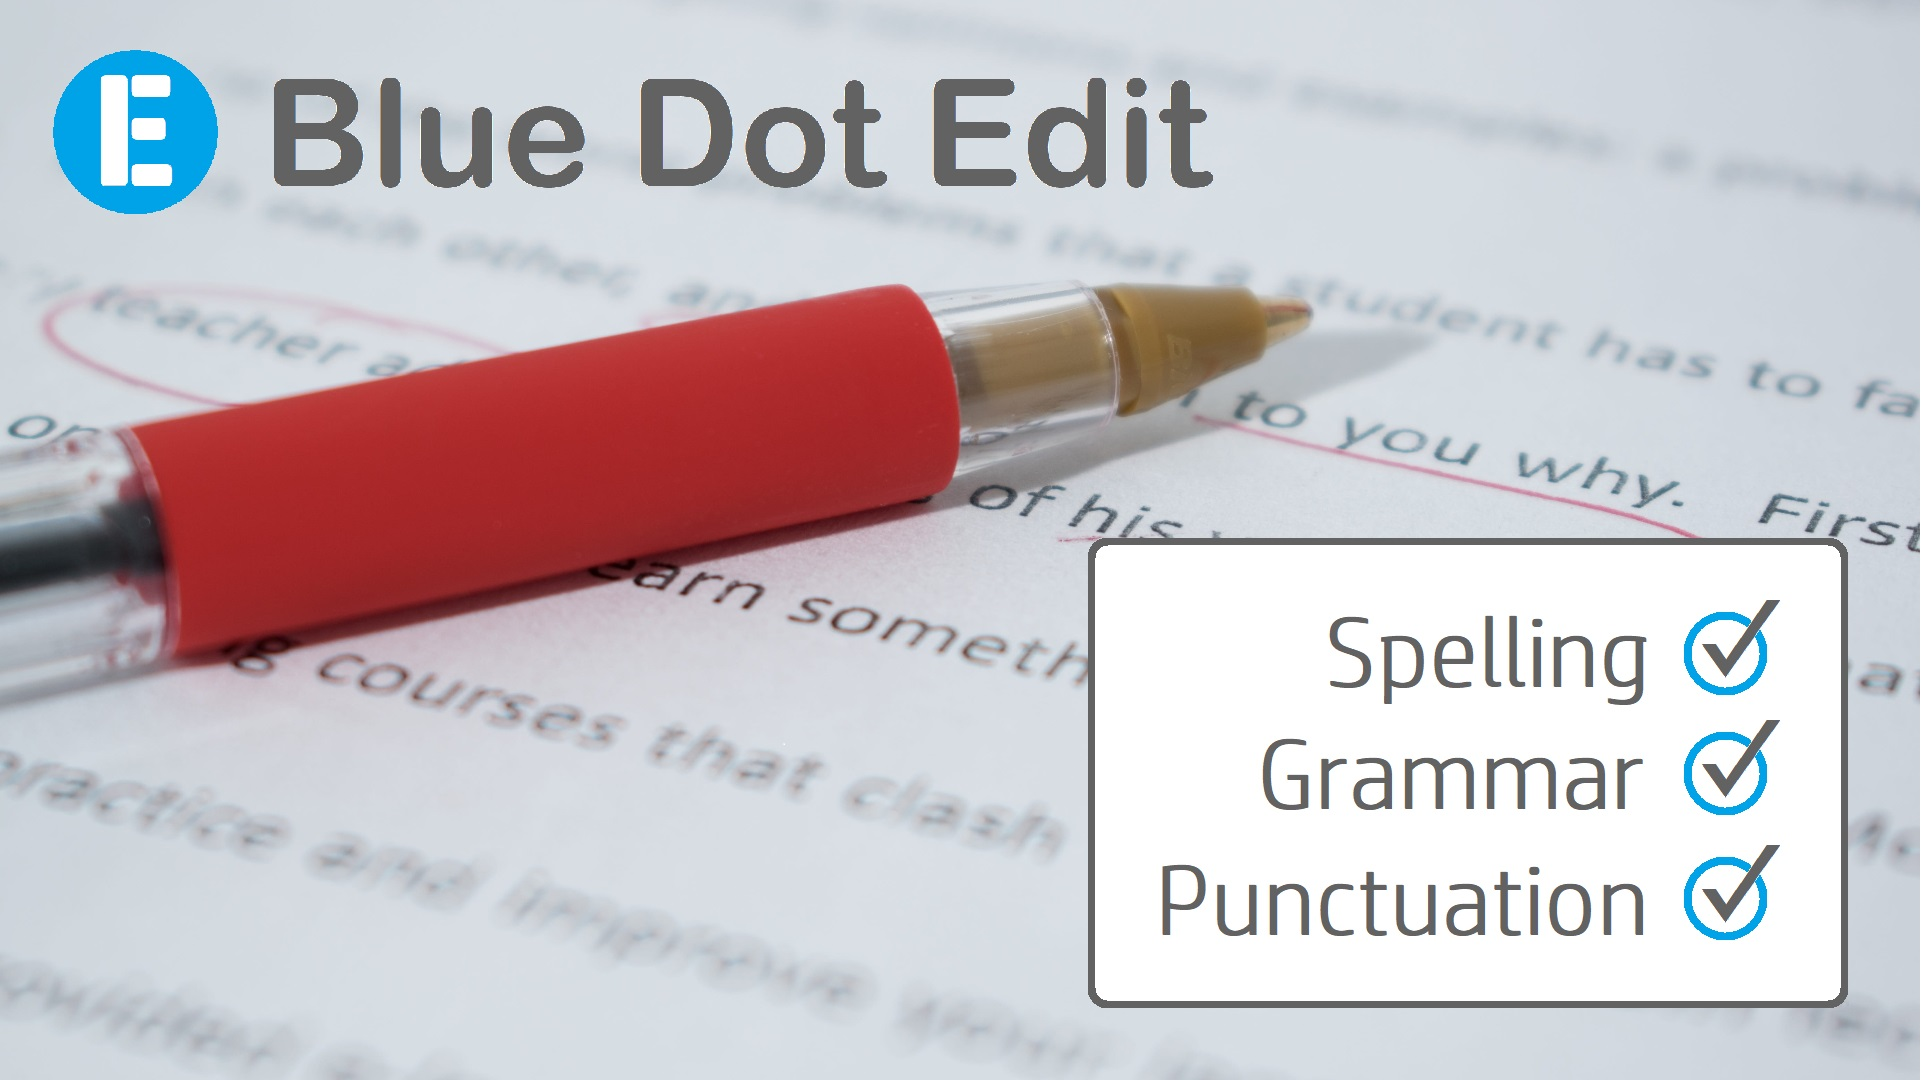 Proofread and edit 1,000 words in English